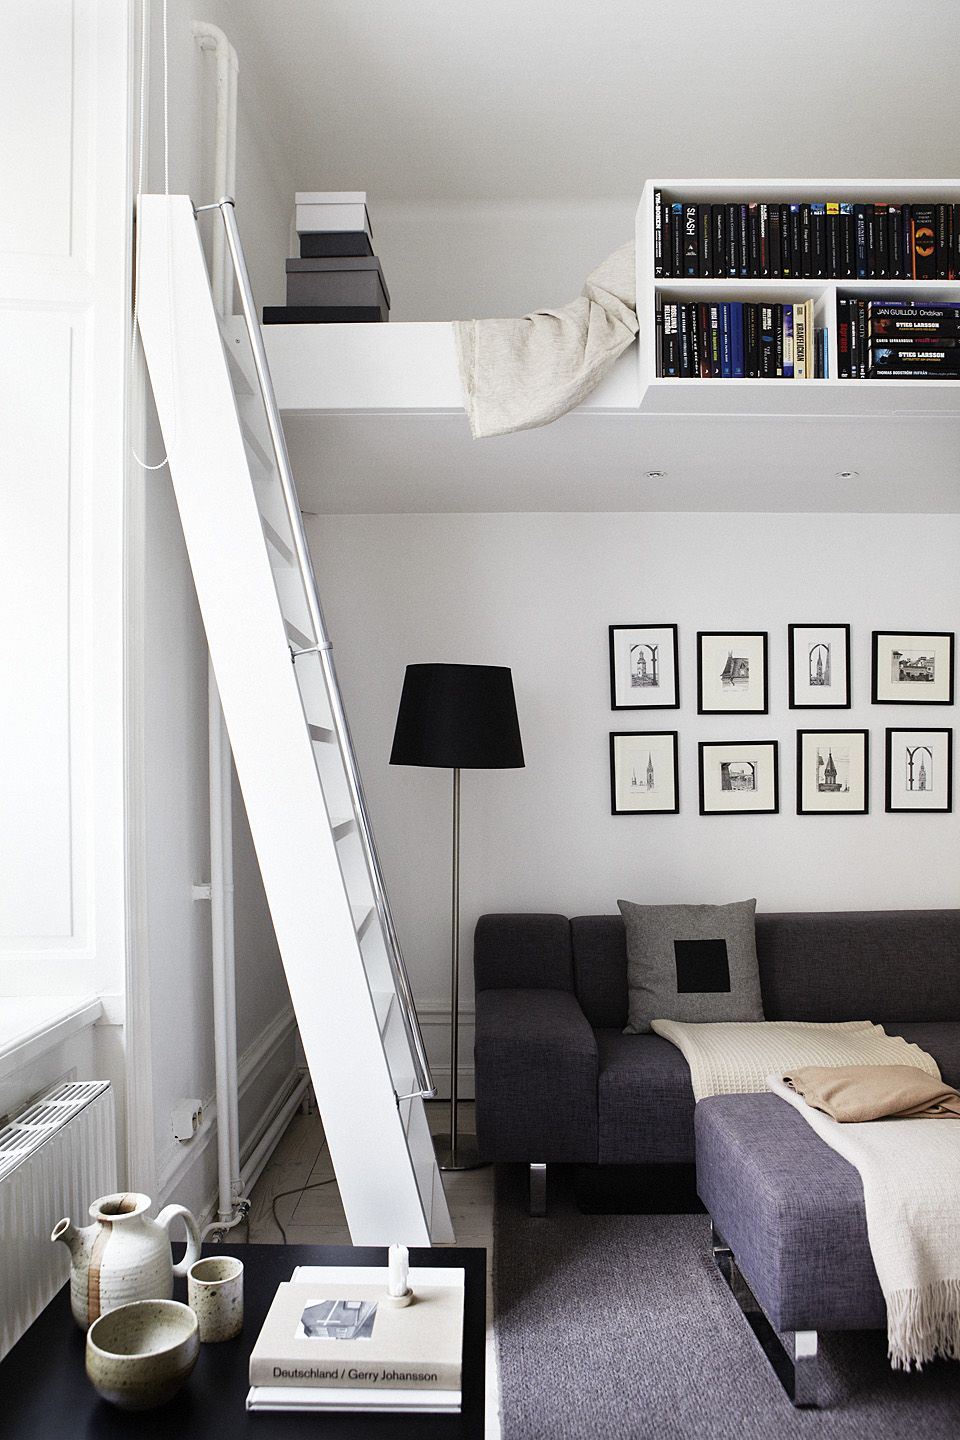 Swedish style loft bed